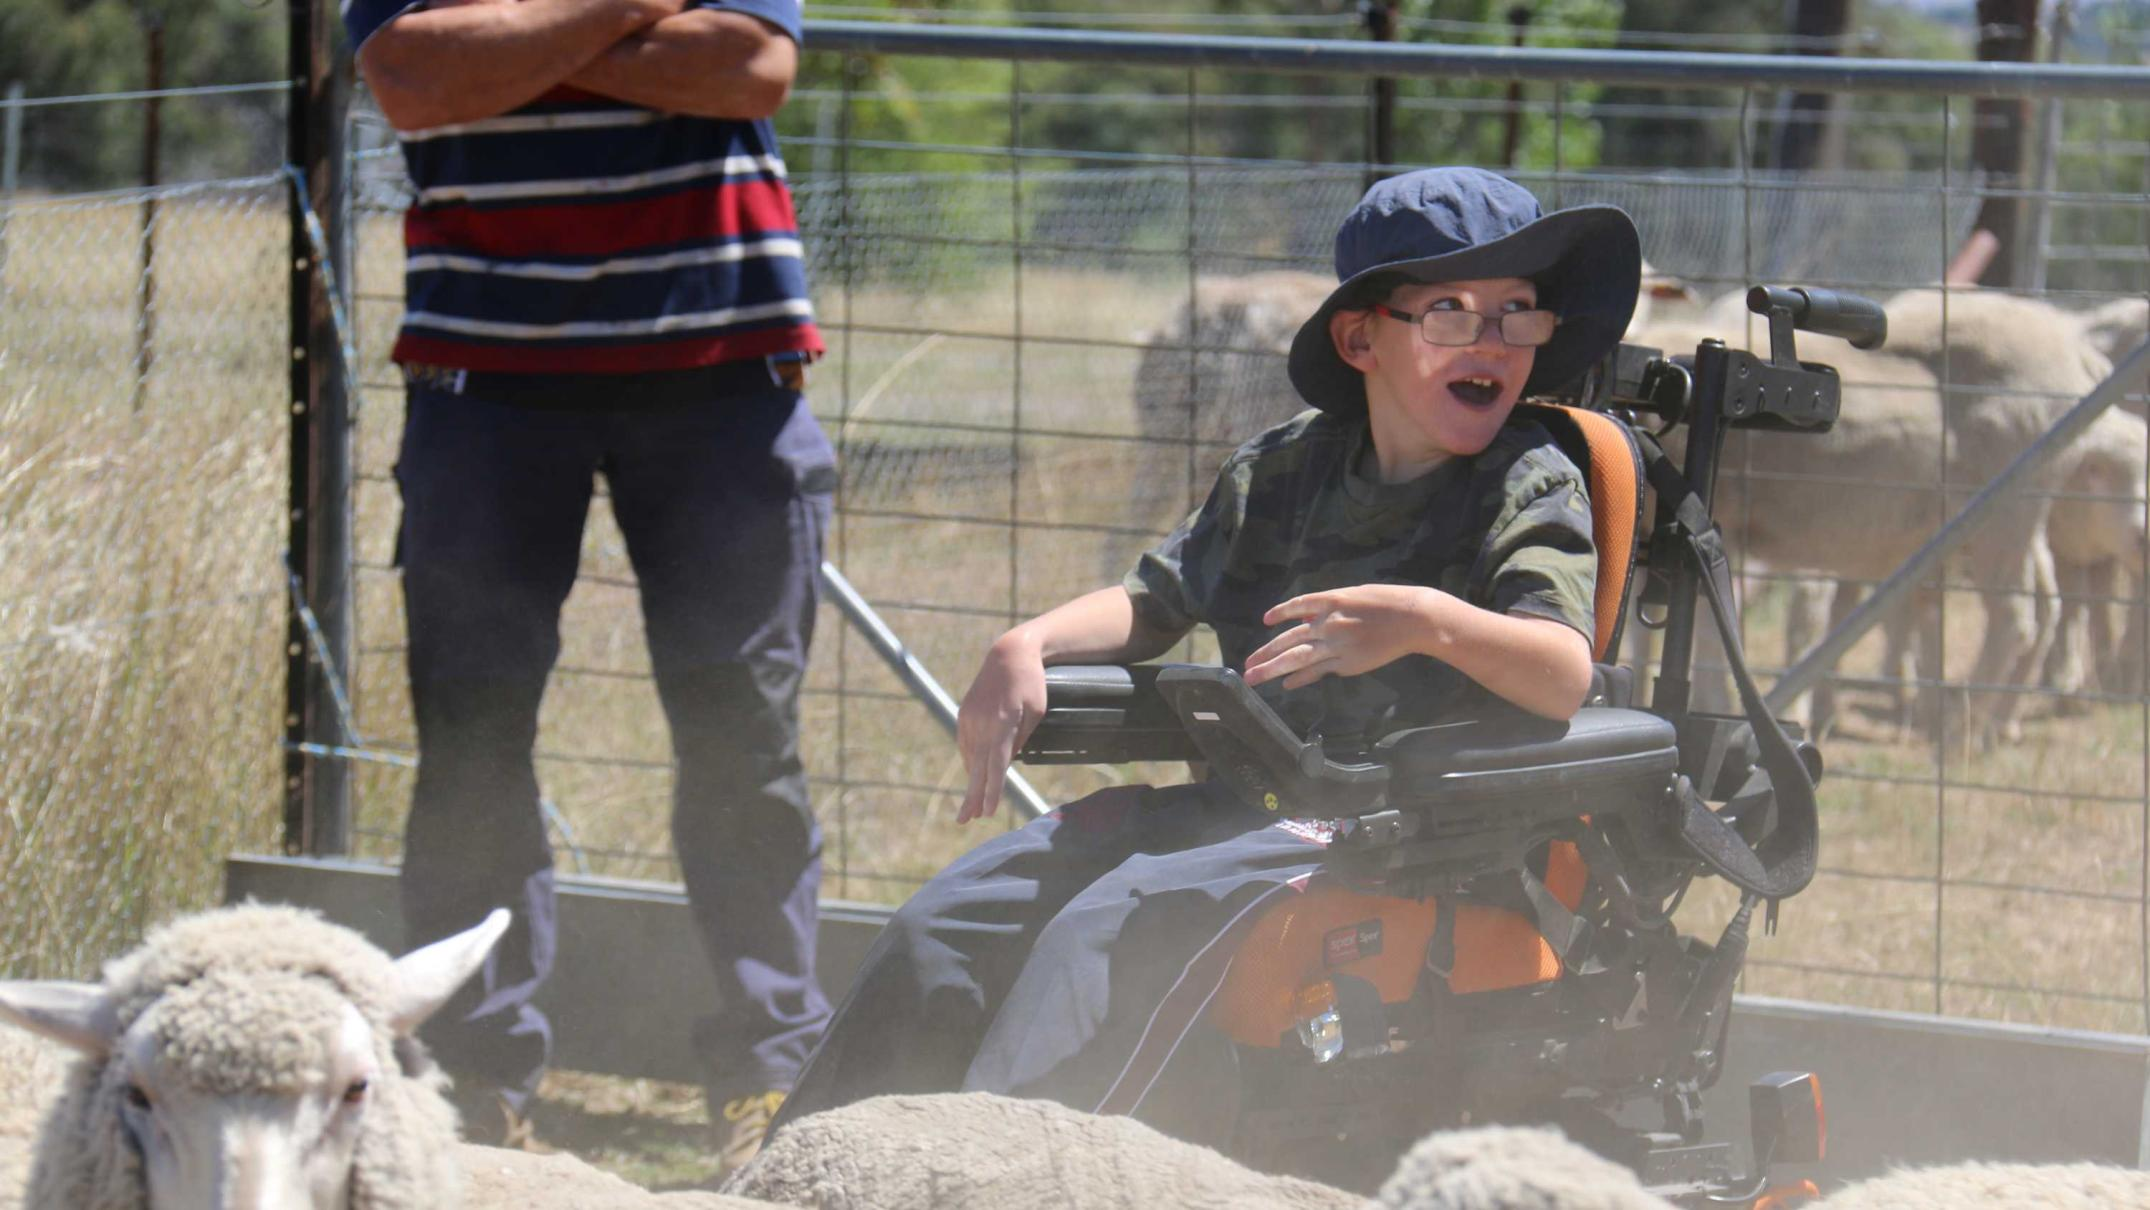 born-with-cerebral-palsy,-lucas-is-thriving-after-discovering-a-passion-for-sheep-mustering